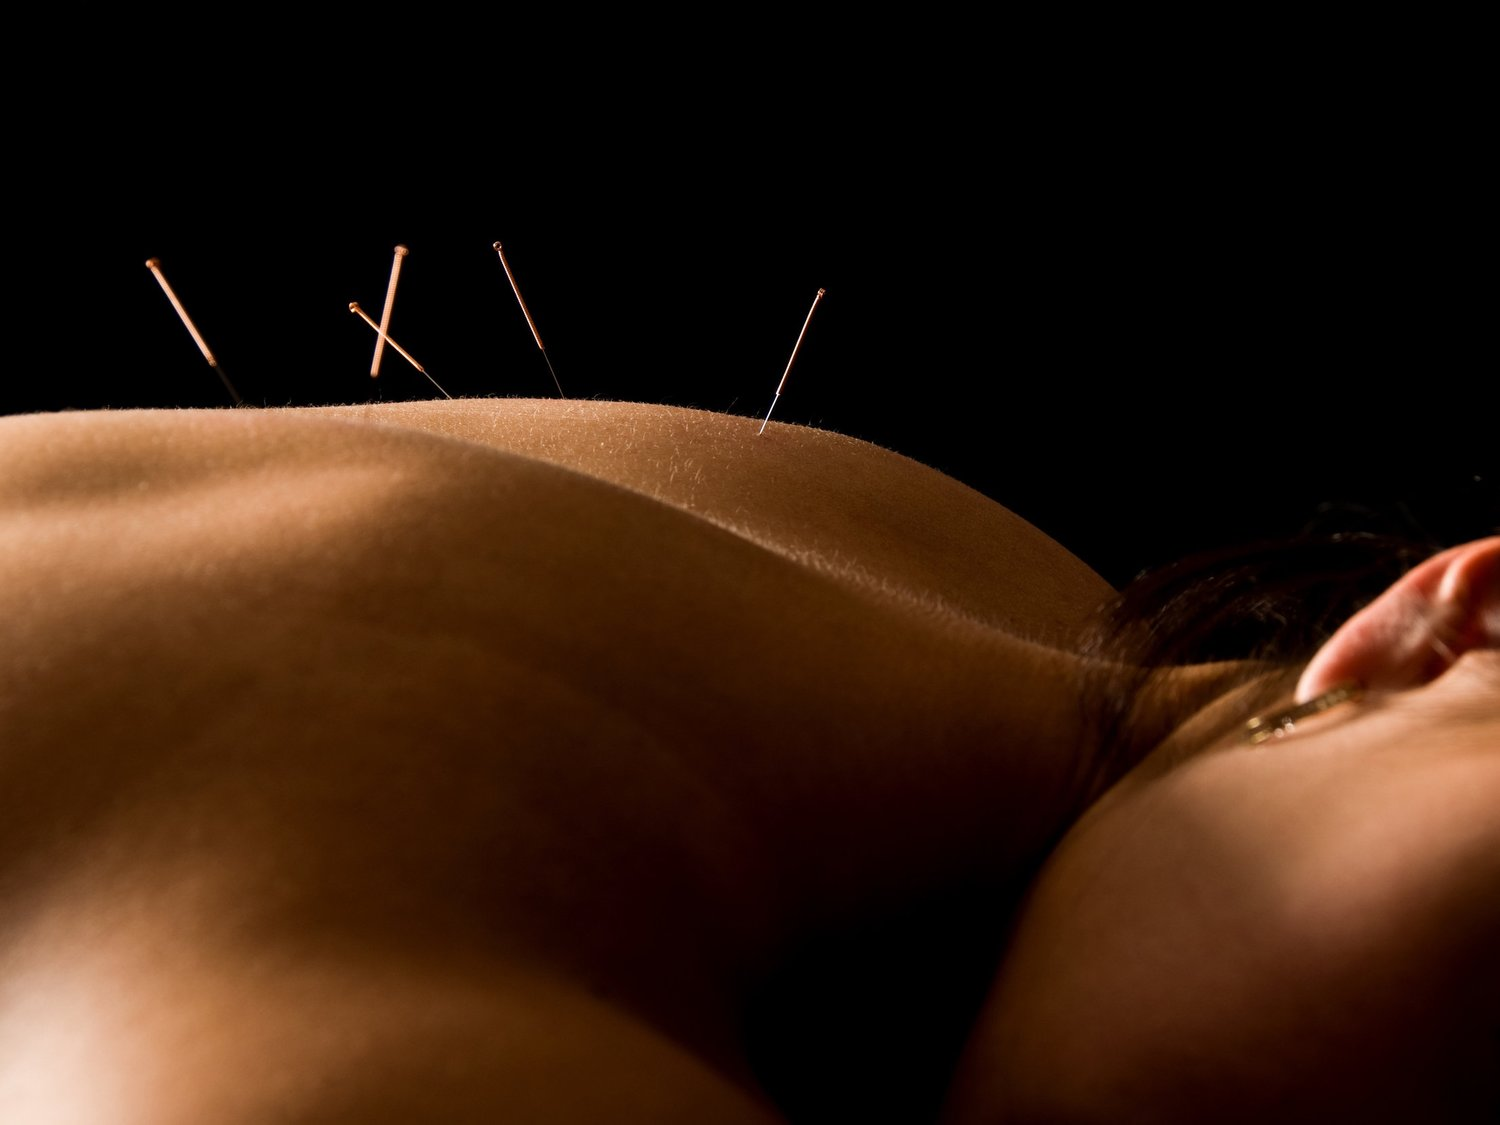 Acupuncture treatment to relief your back pain